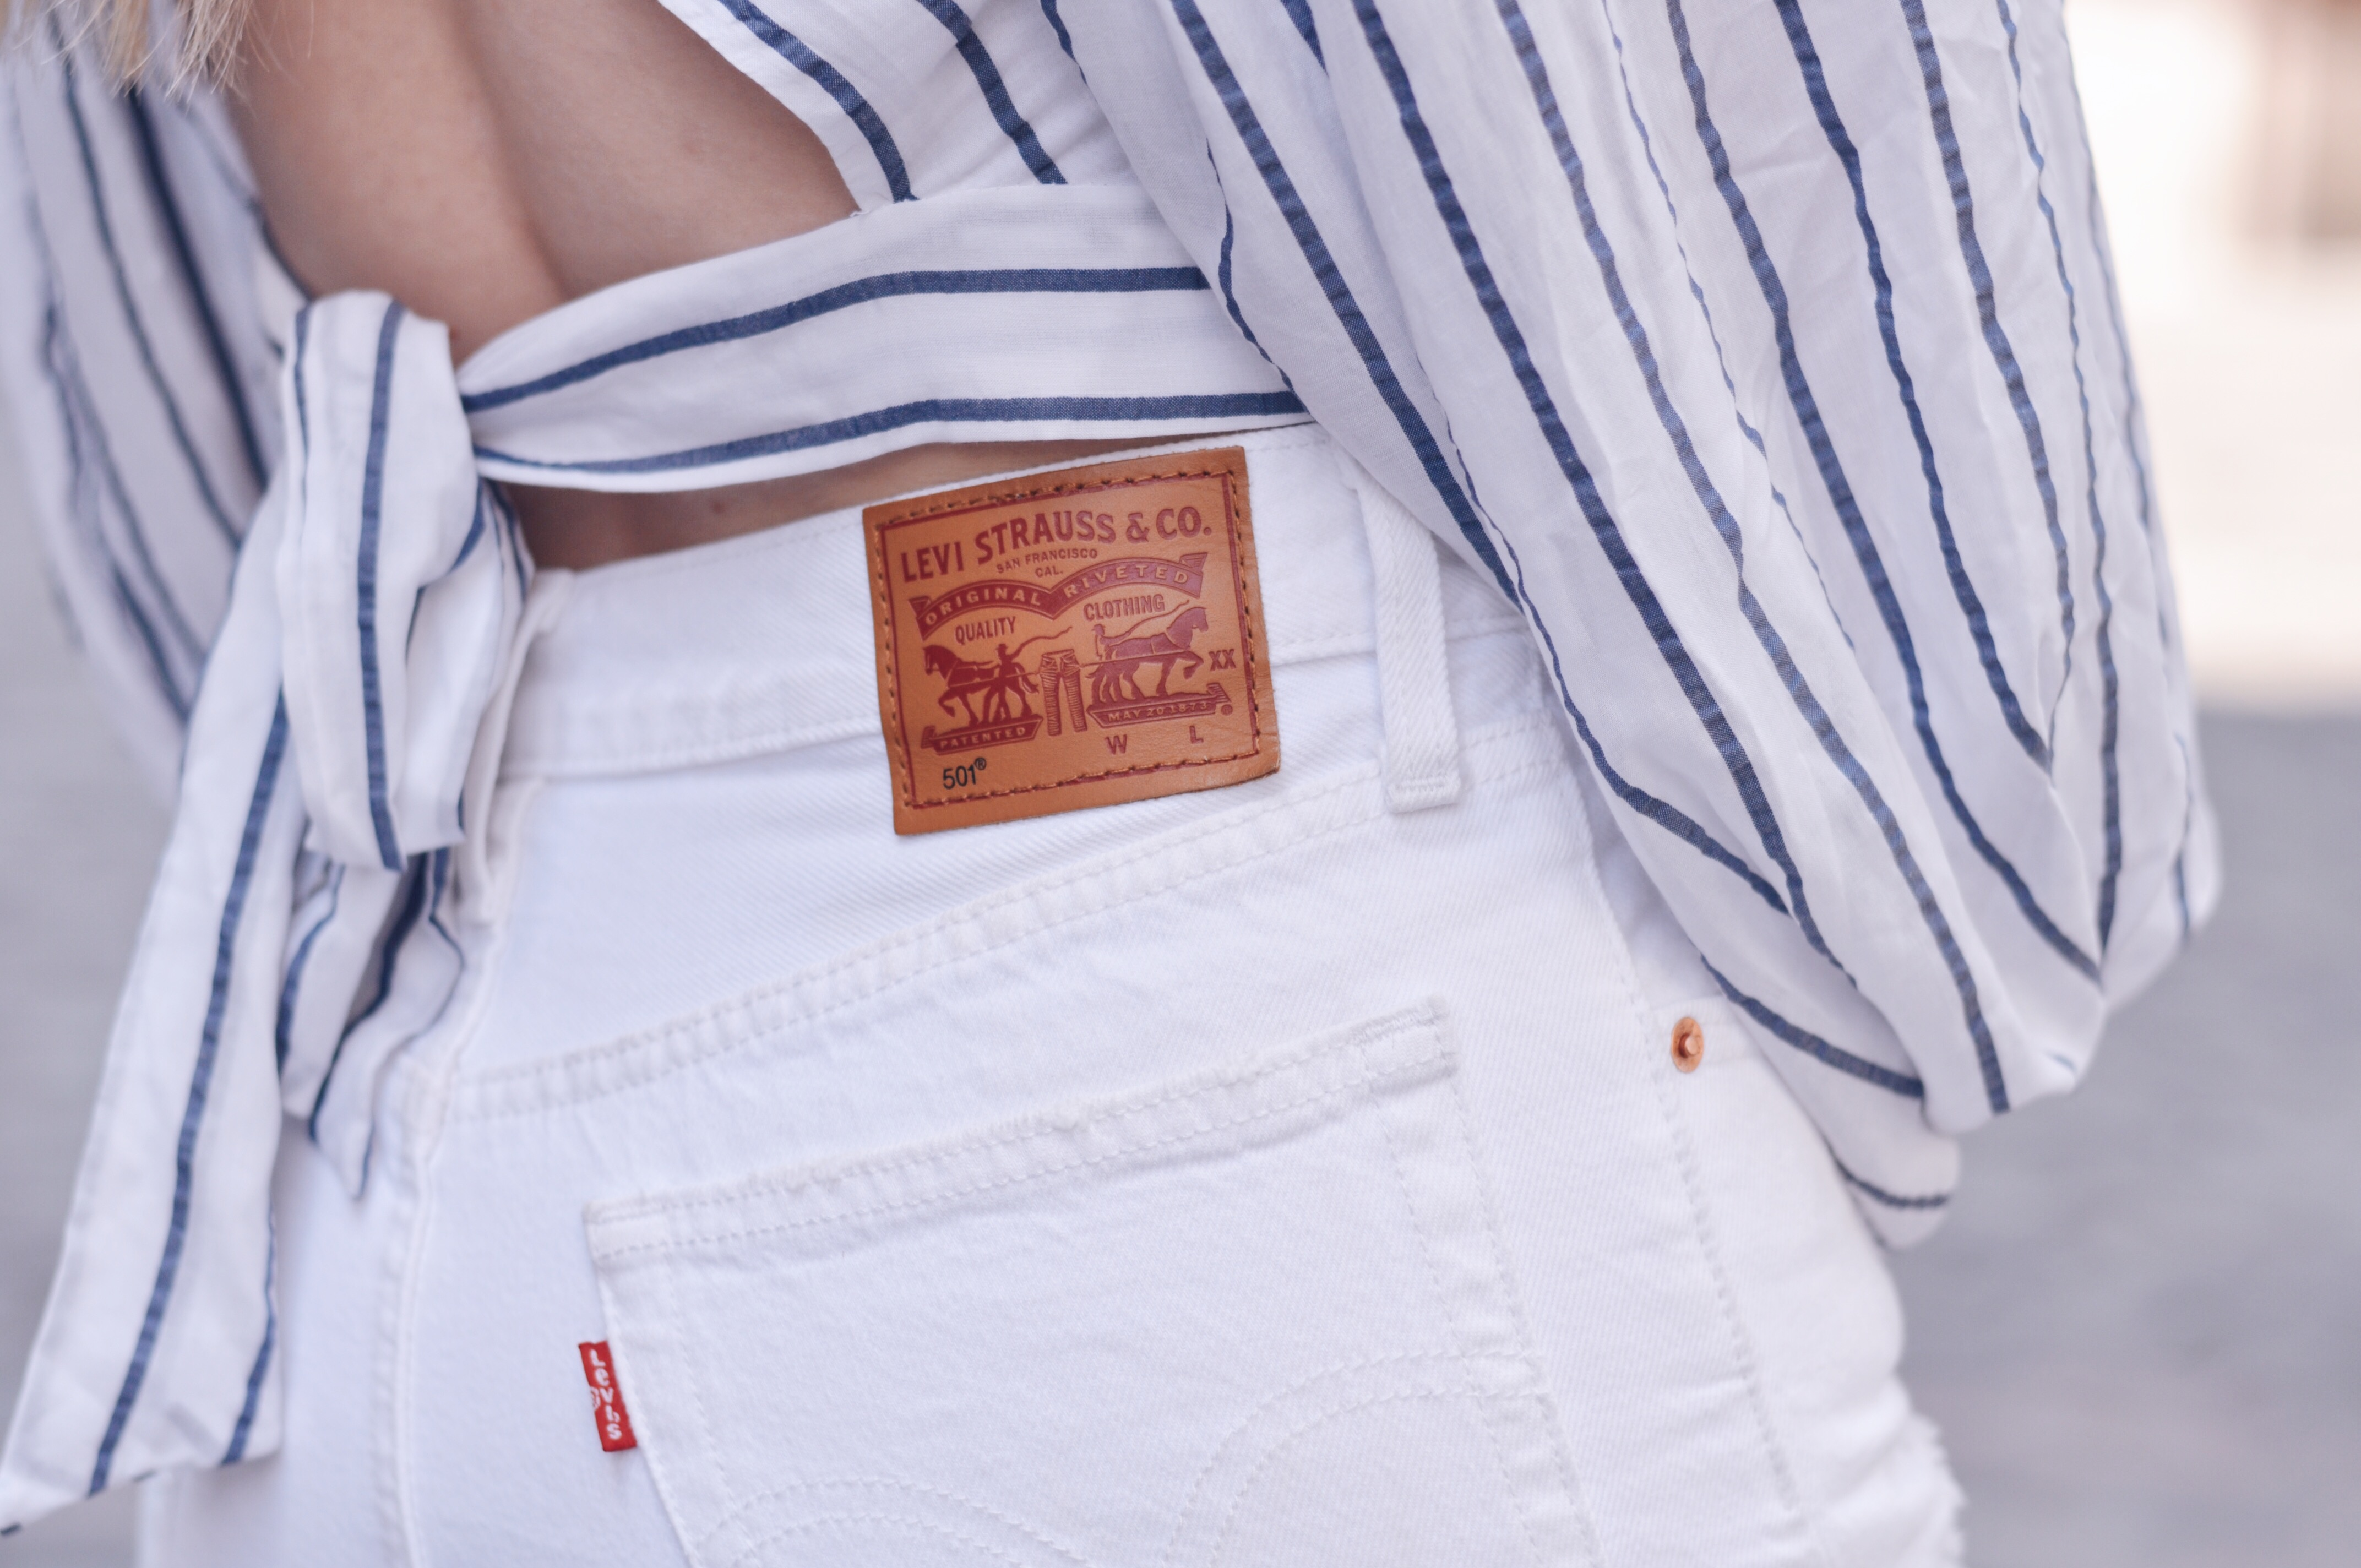 HOW TO WEAR: LEVIS 501 SHORTS